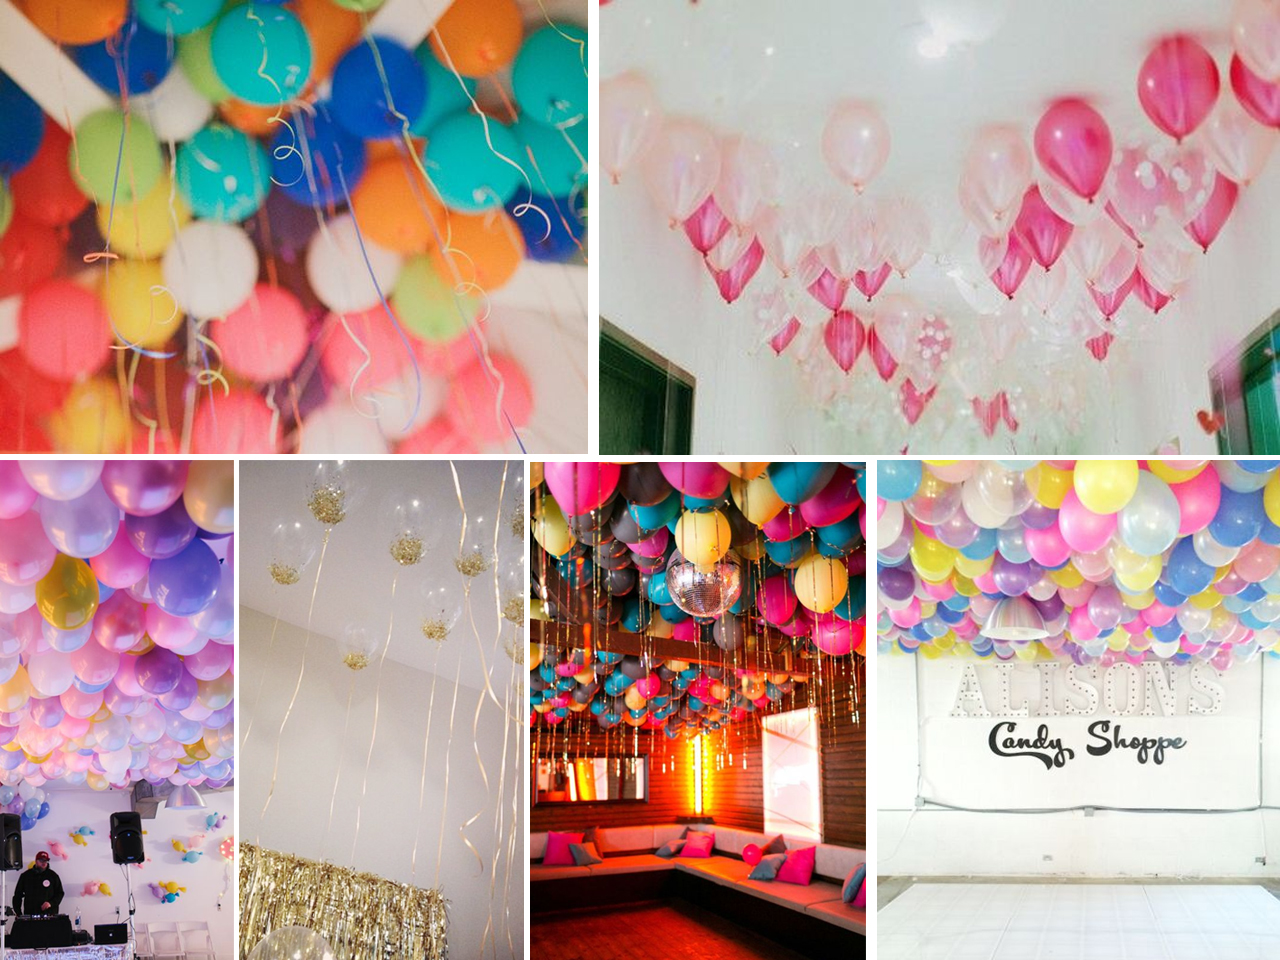 Descubre c mo decorar con globos con estas fant sticas ideas - Decoraciones para techos ...